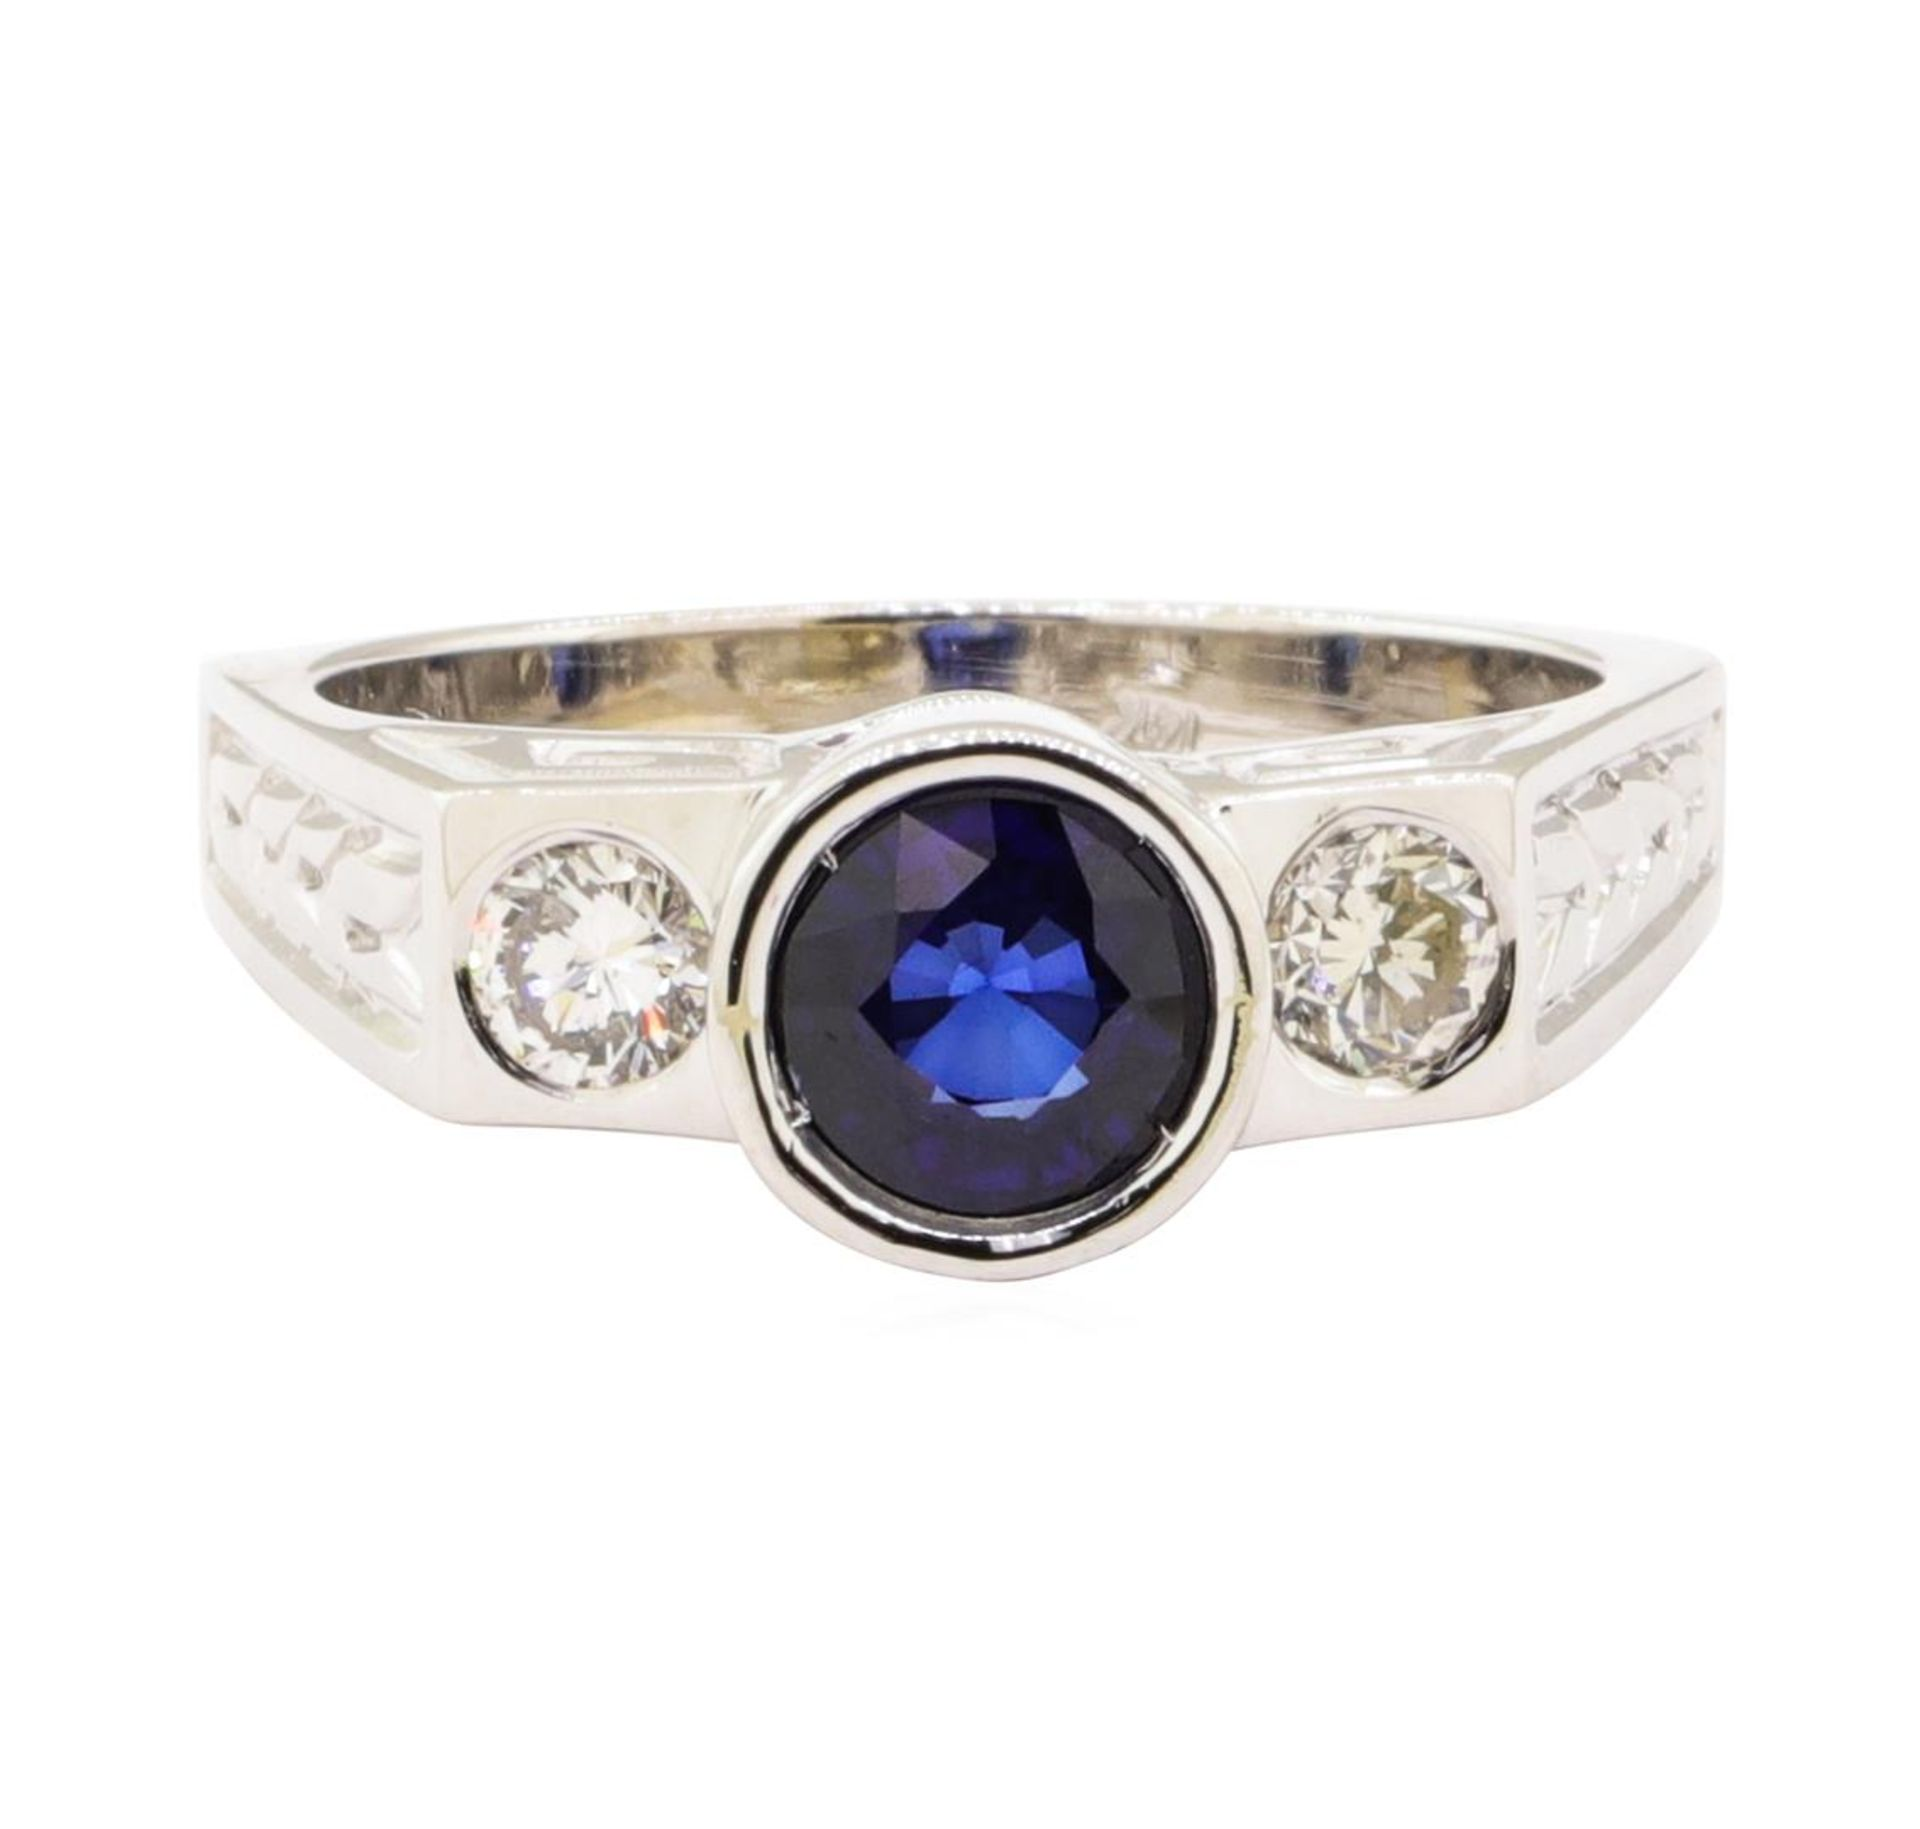 1.60 ctw Blue Sapphire And Diamond Ring - 14KT White Gold - Image 2 of 5